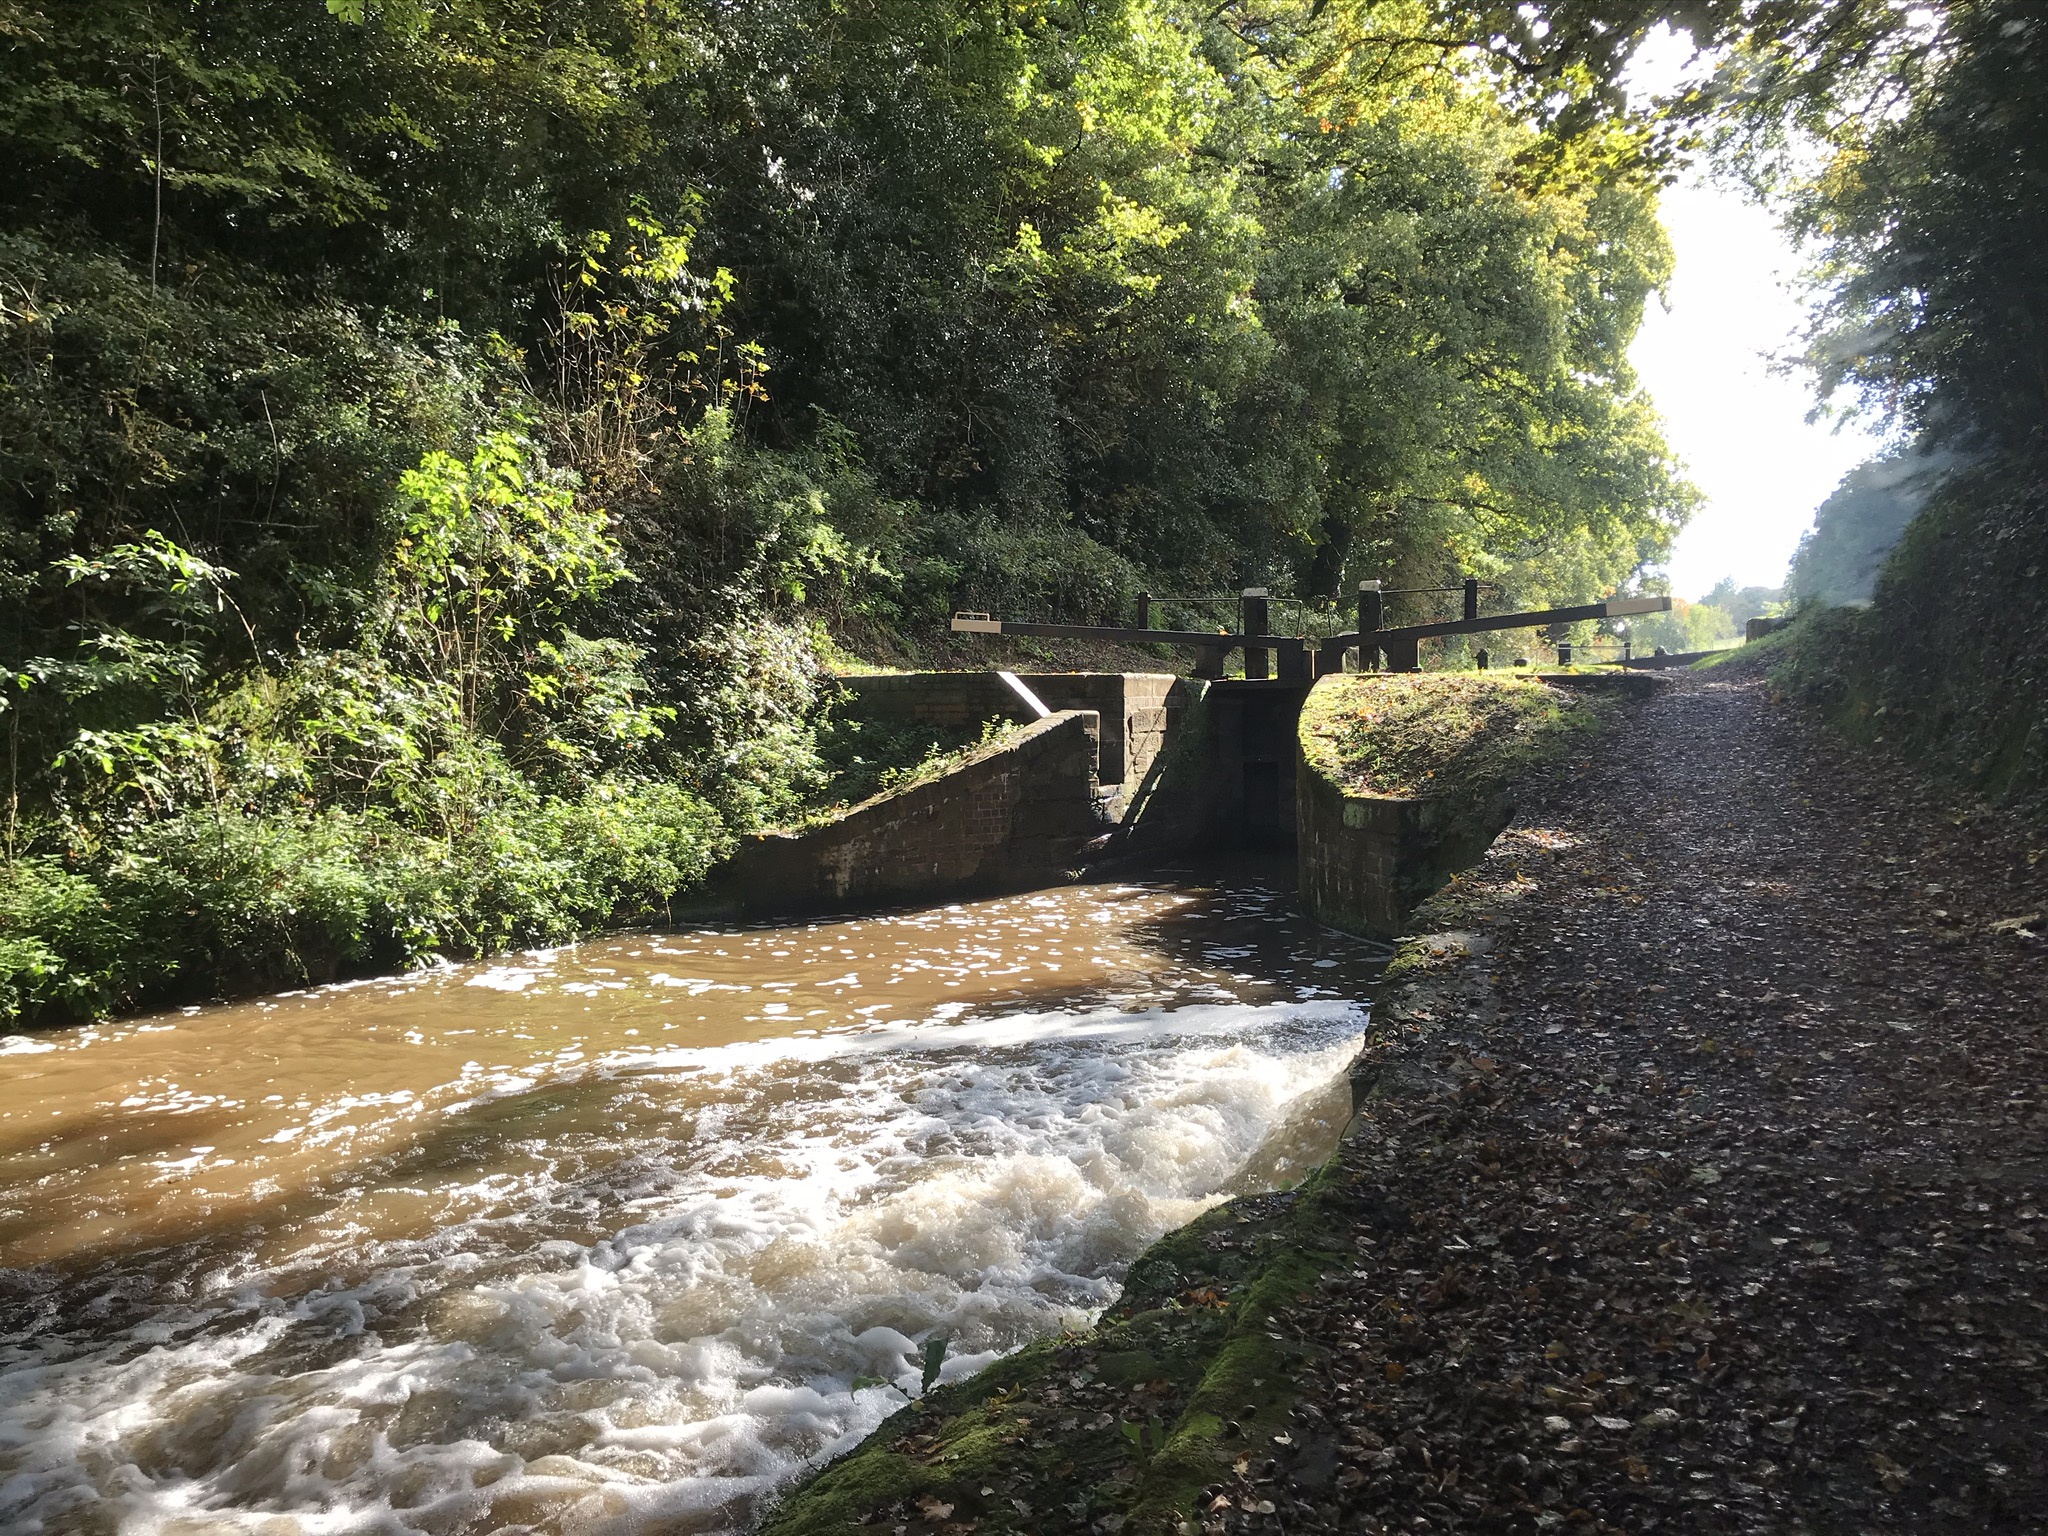 White water rushing out a sluice in front of a closed canal lock. The canal is in a cutting and sunning is glinting through the tall leafy trees in the background